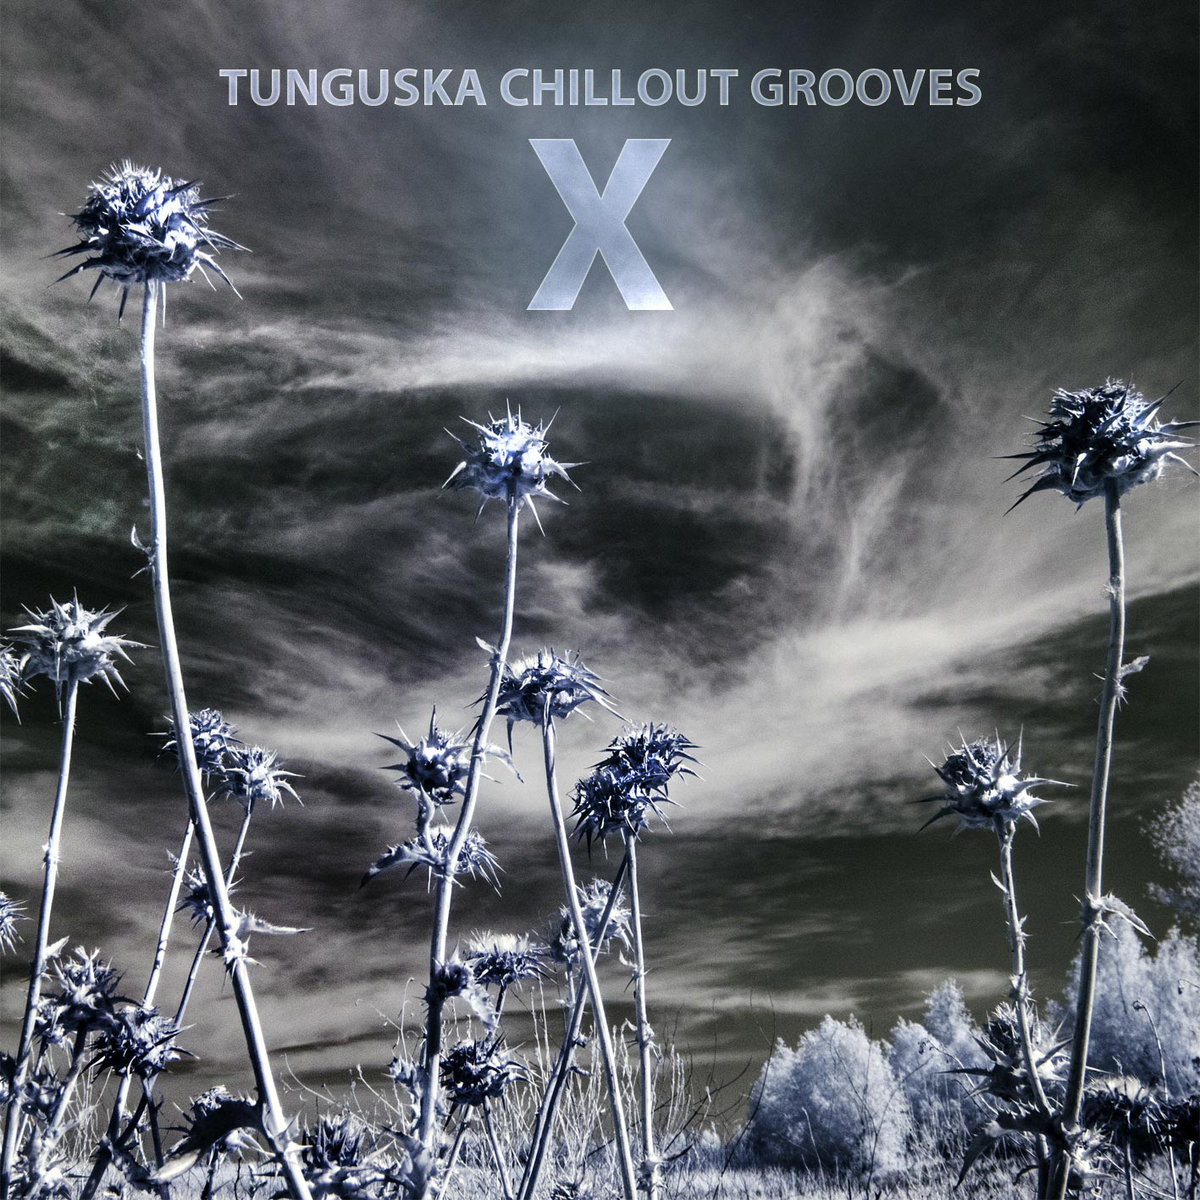 Aquascape - Remanence @ 'Tunguska Chillout Grooves - Volume 10' album (electronic, ambient)